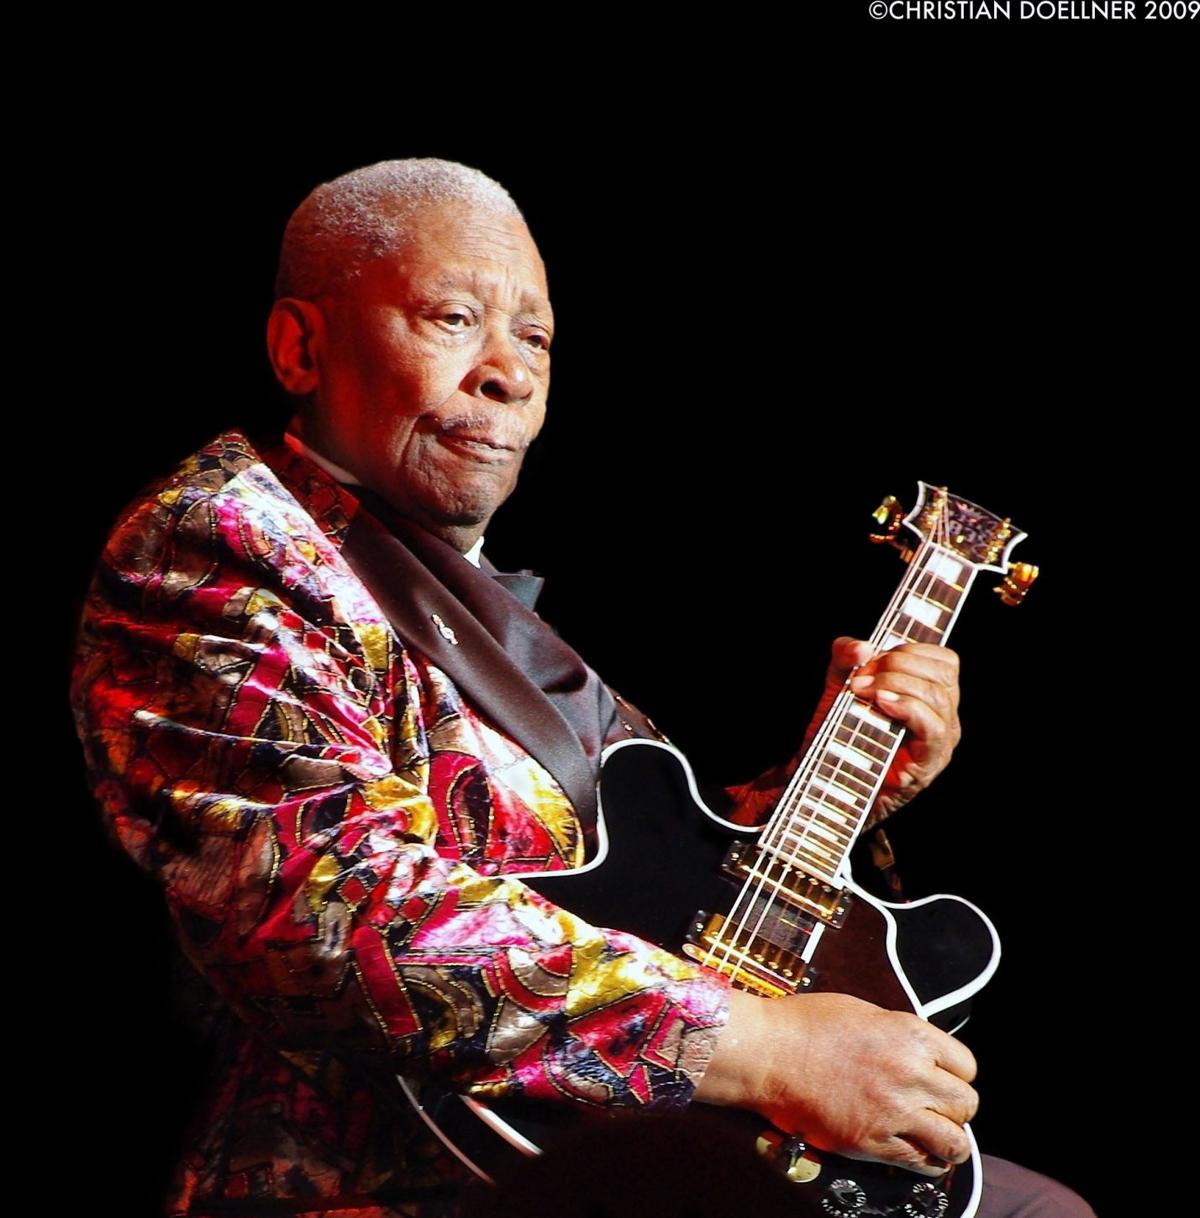 The Reverend Peyton on BB King and his perfect notes